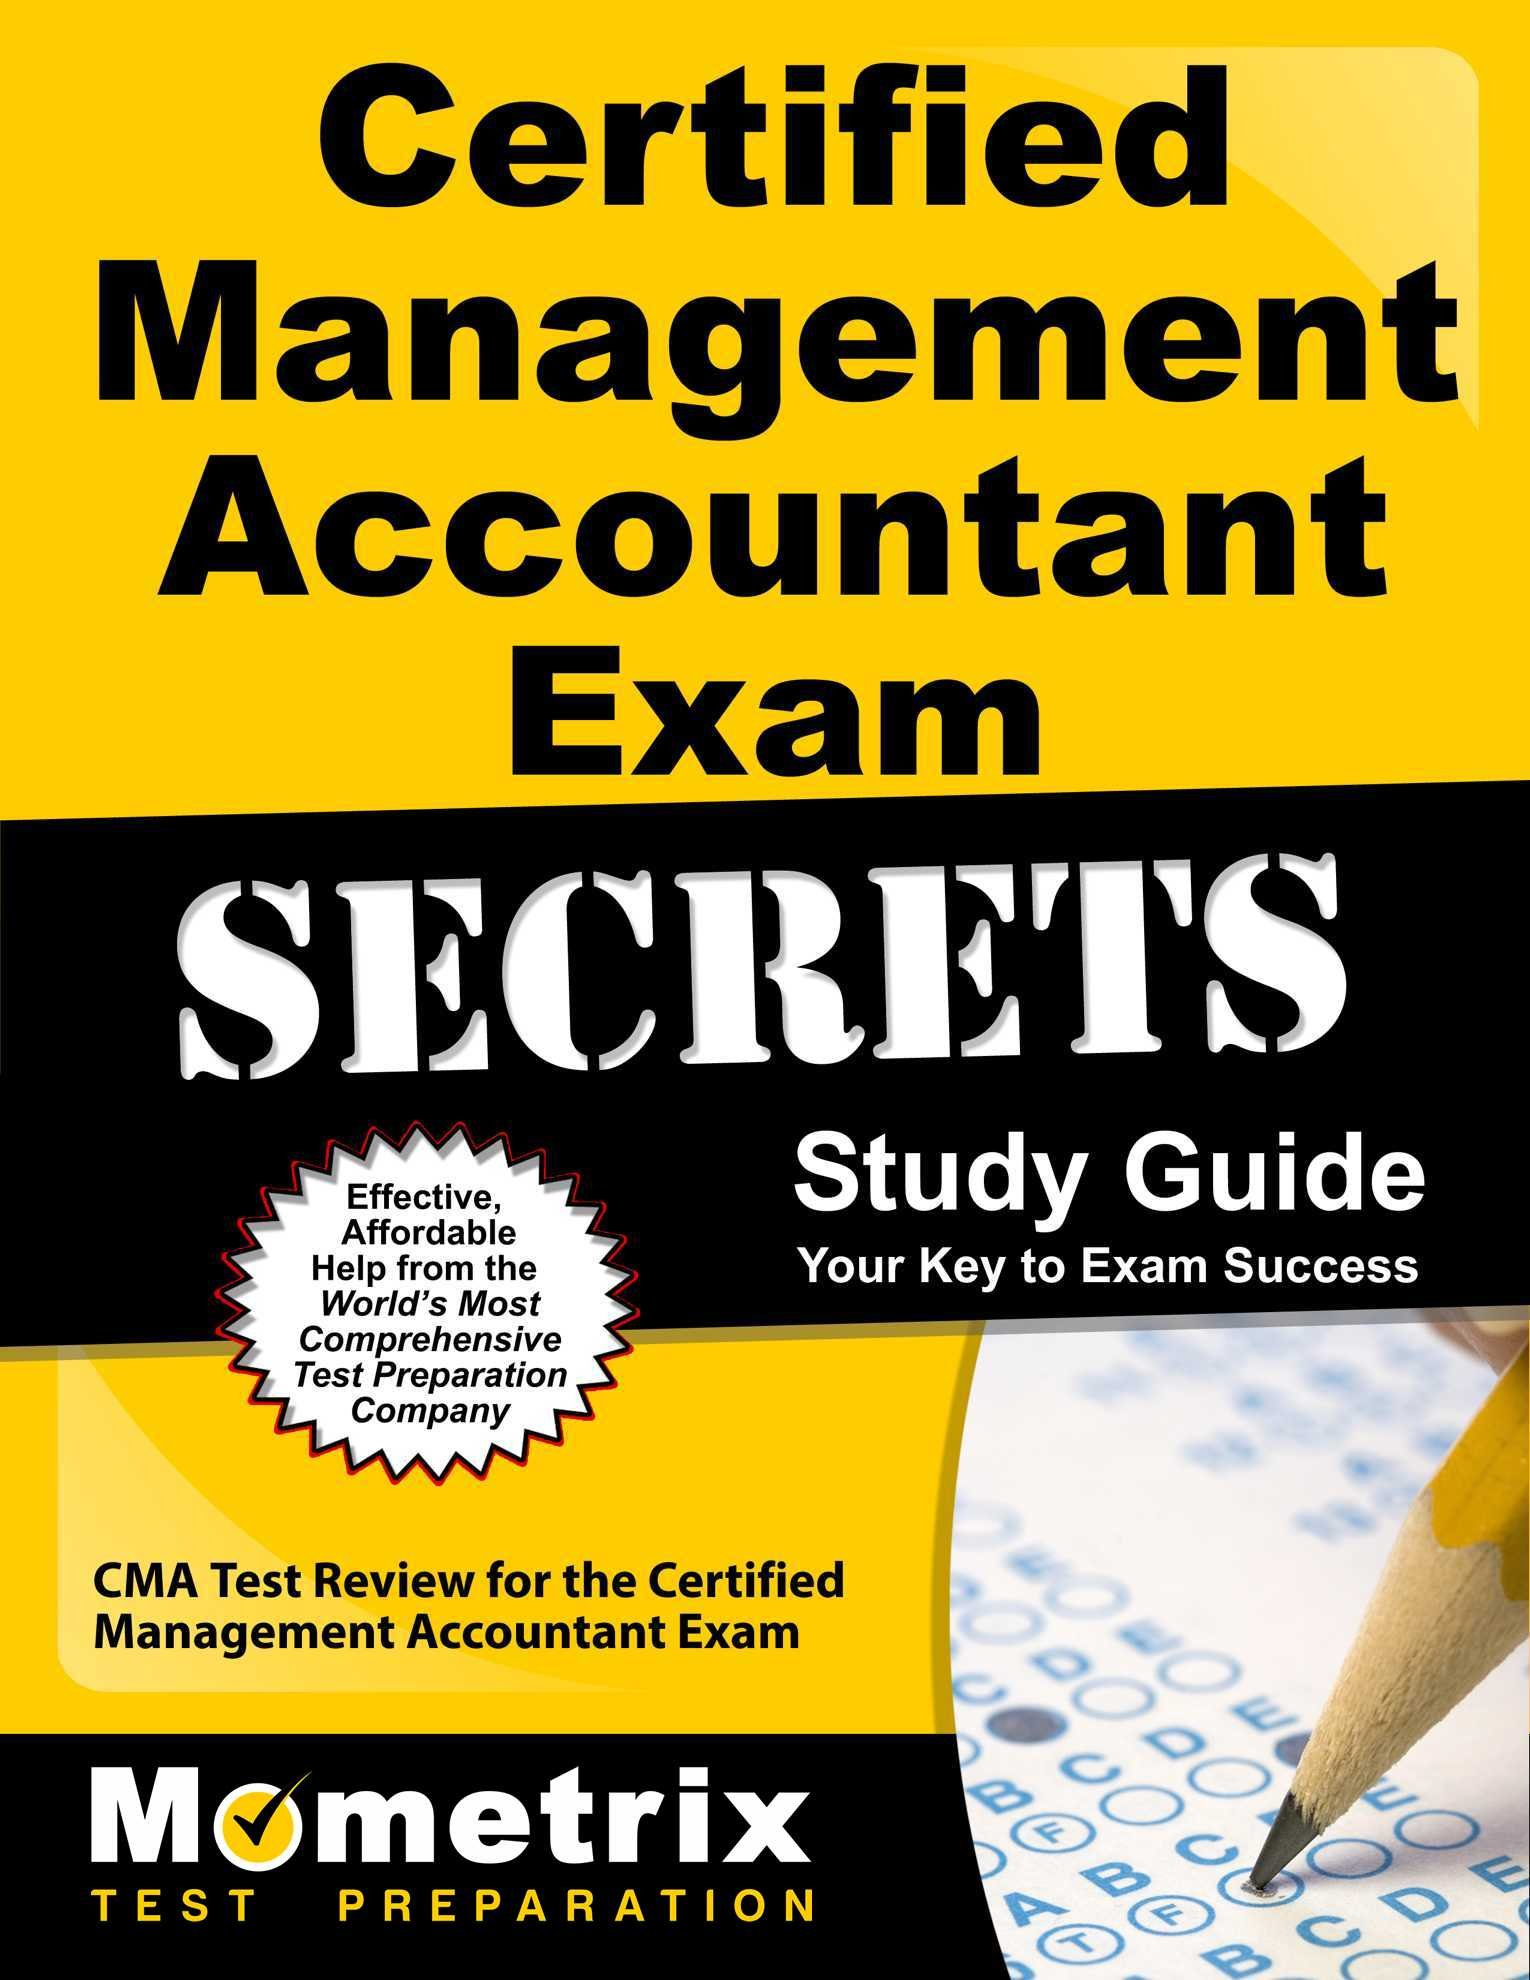 Certified Management Accountant Exam Secrets Study Guide Cma Test